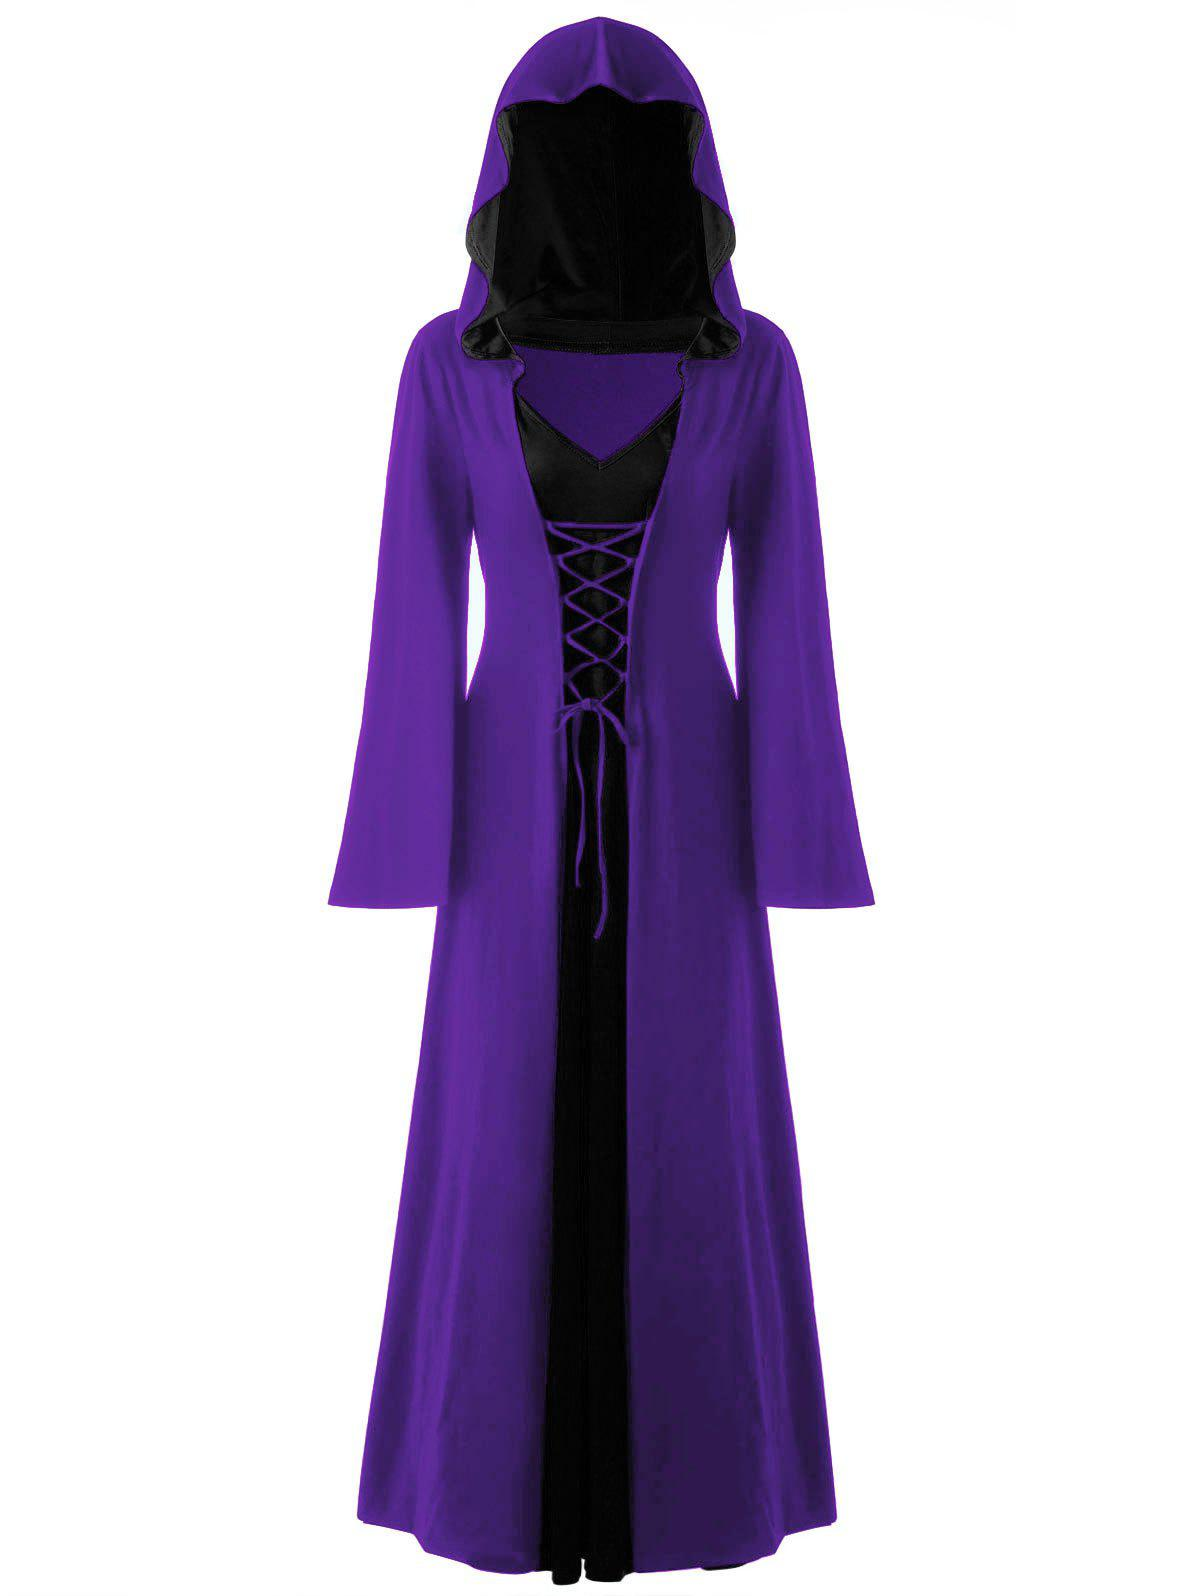 Halloween Plus Size Lace Up Hooded Maxi DressWOMEN<br><br>Size: 5XL; Color: CONCORD; Style: Novelty; Material: Polyester,Spandex; Silhouette: A-Line; Dresses Length: Ankle-Length; Neckline: Hooded; Sleeve Length: Long Sleeves; Pattern Type: Solid; With Belt: No; Season: Fall,Spring; Weight: 0.6700kg; Package Contents: 1 x Dress;